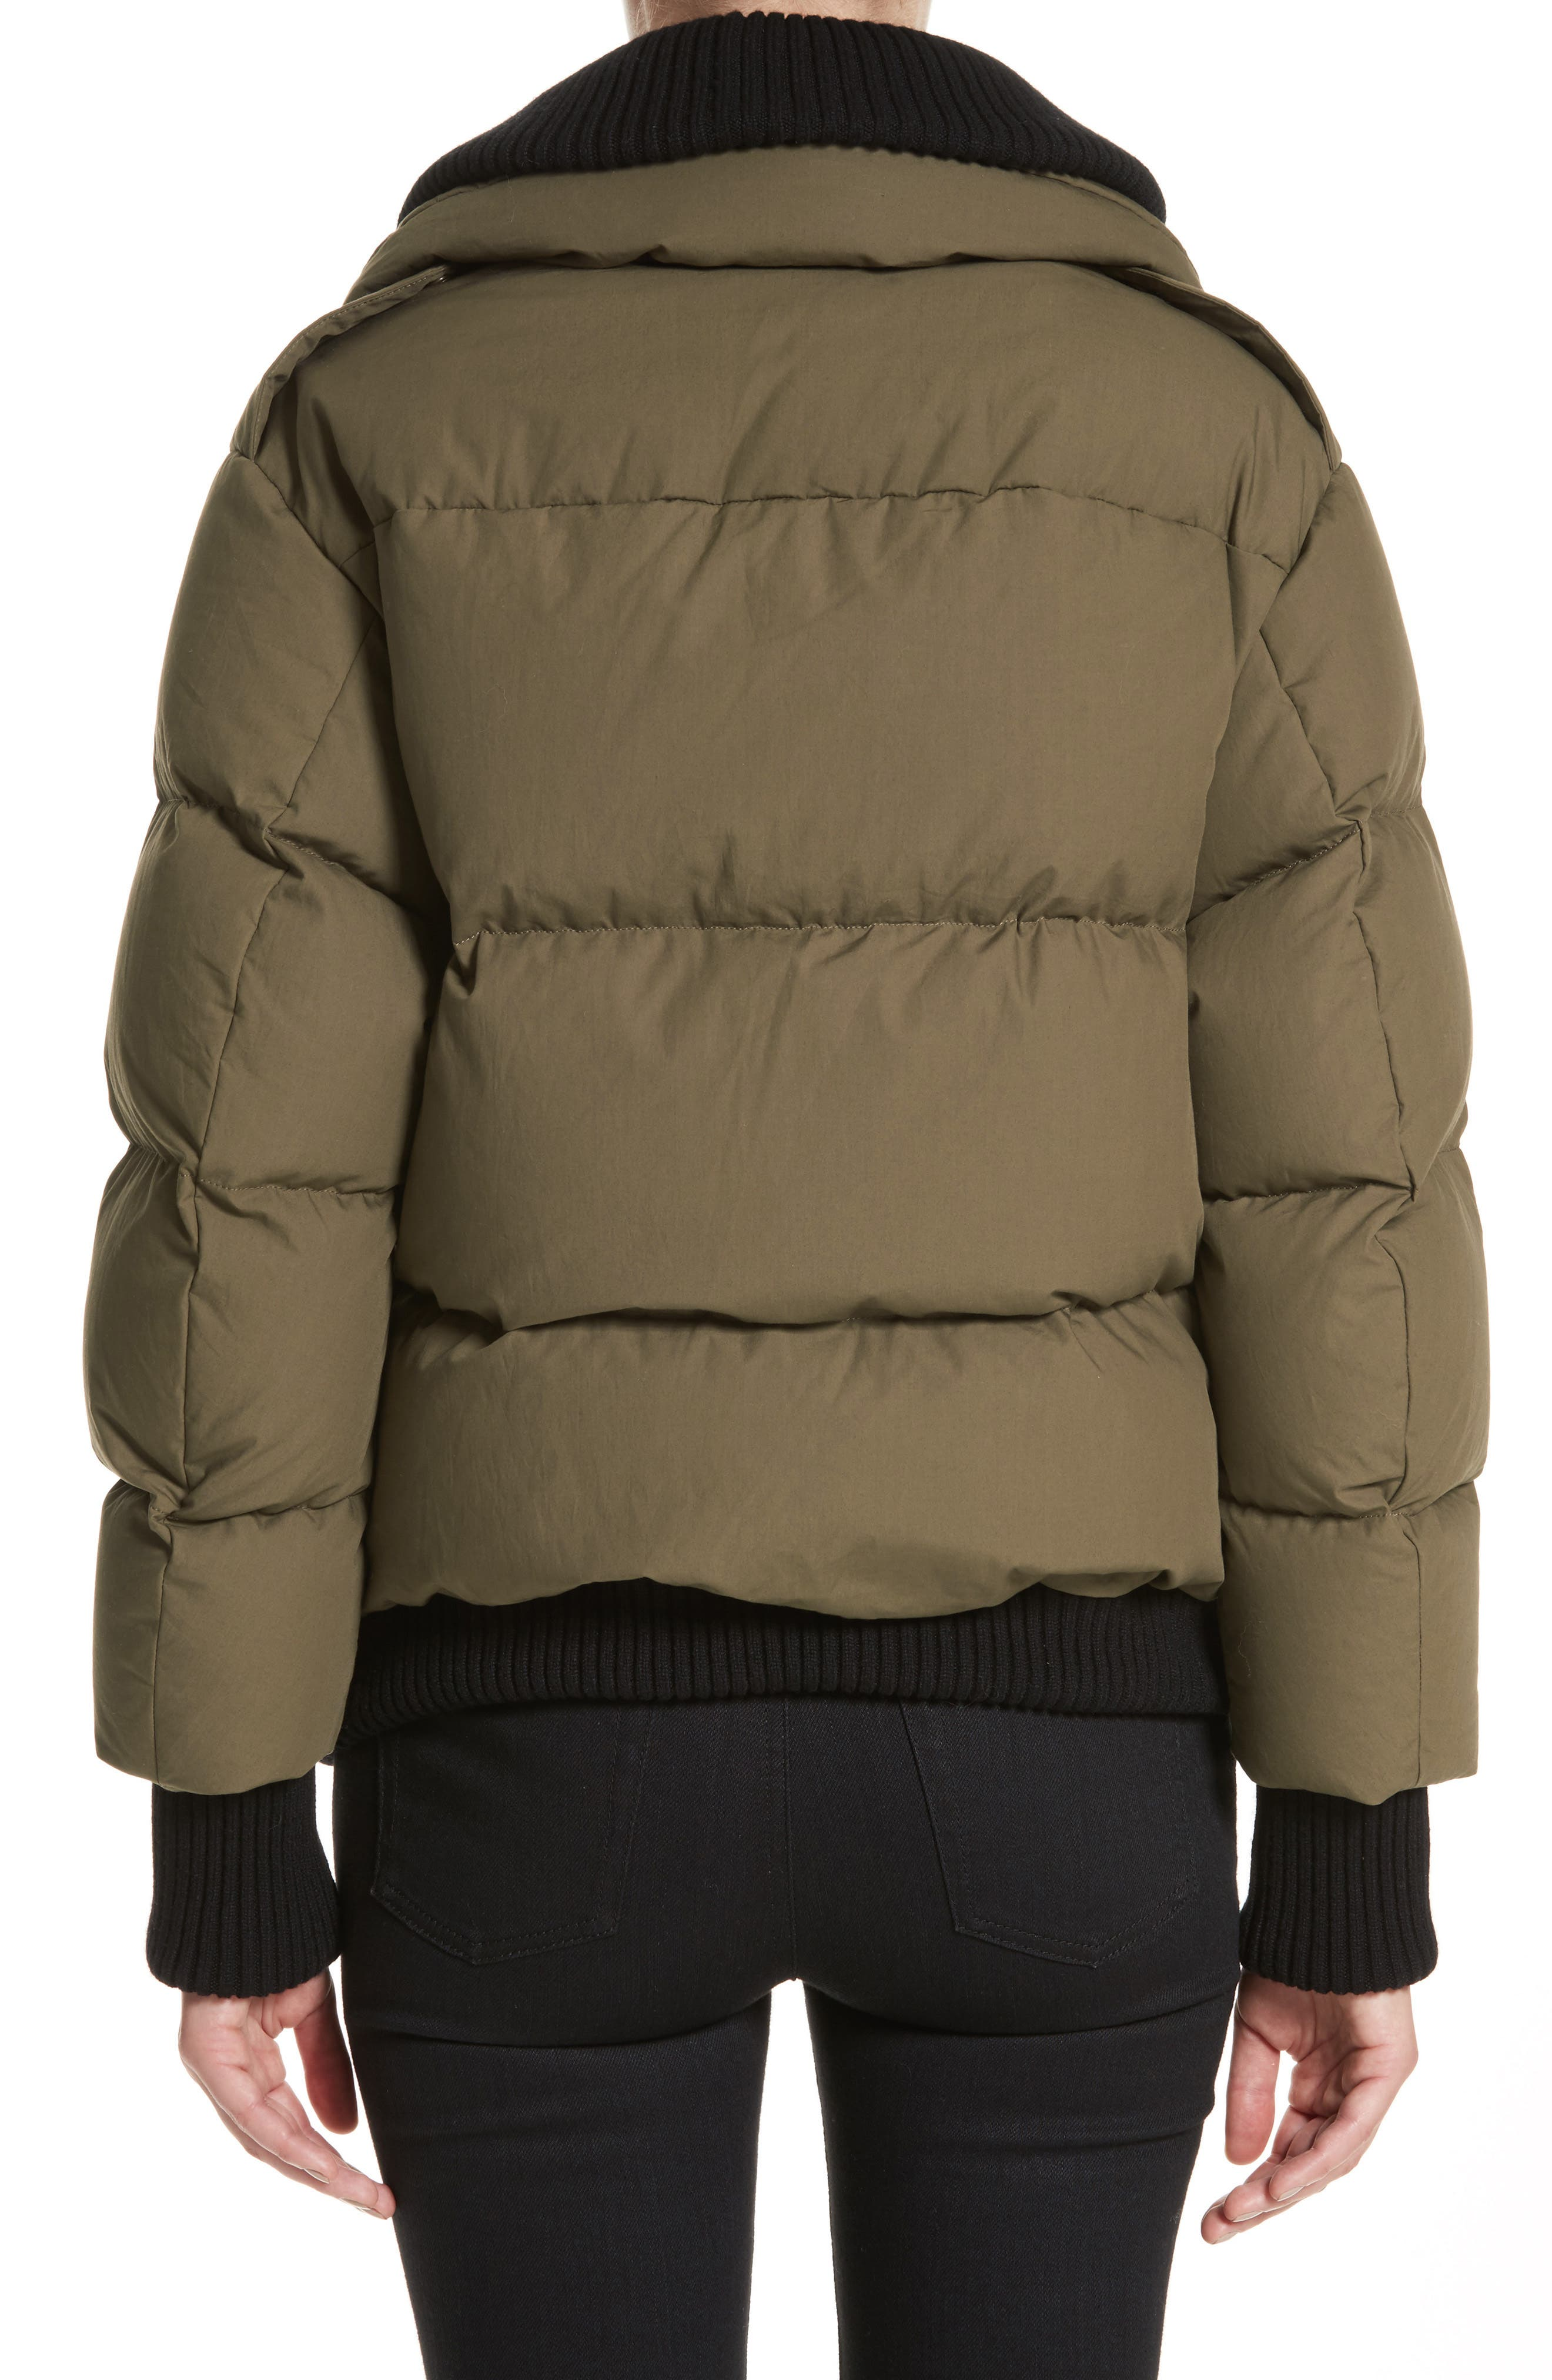 Greenlawkn Puffer Jacket,                             Alternate thumbnail 2, color,                             364